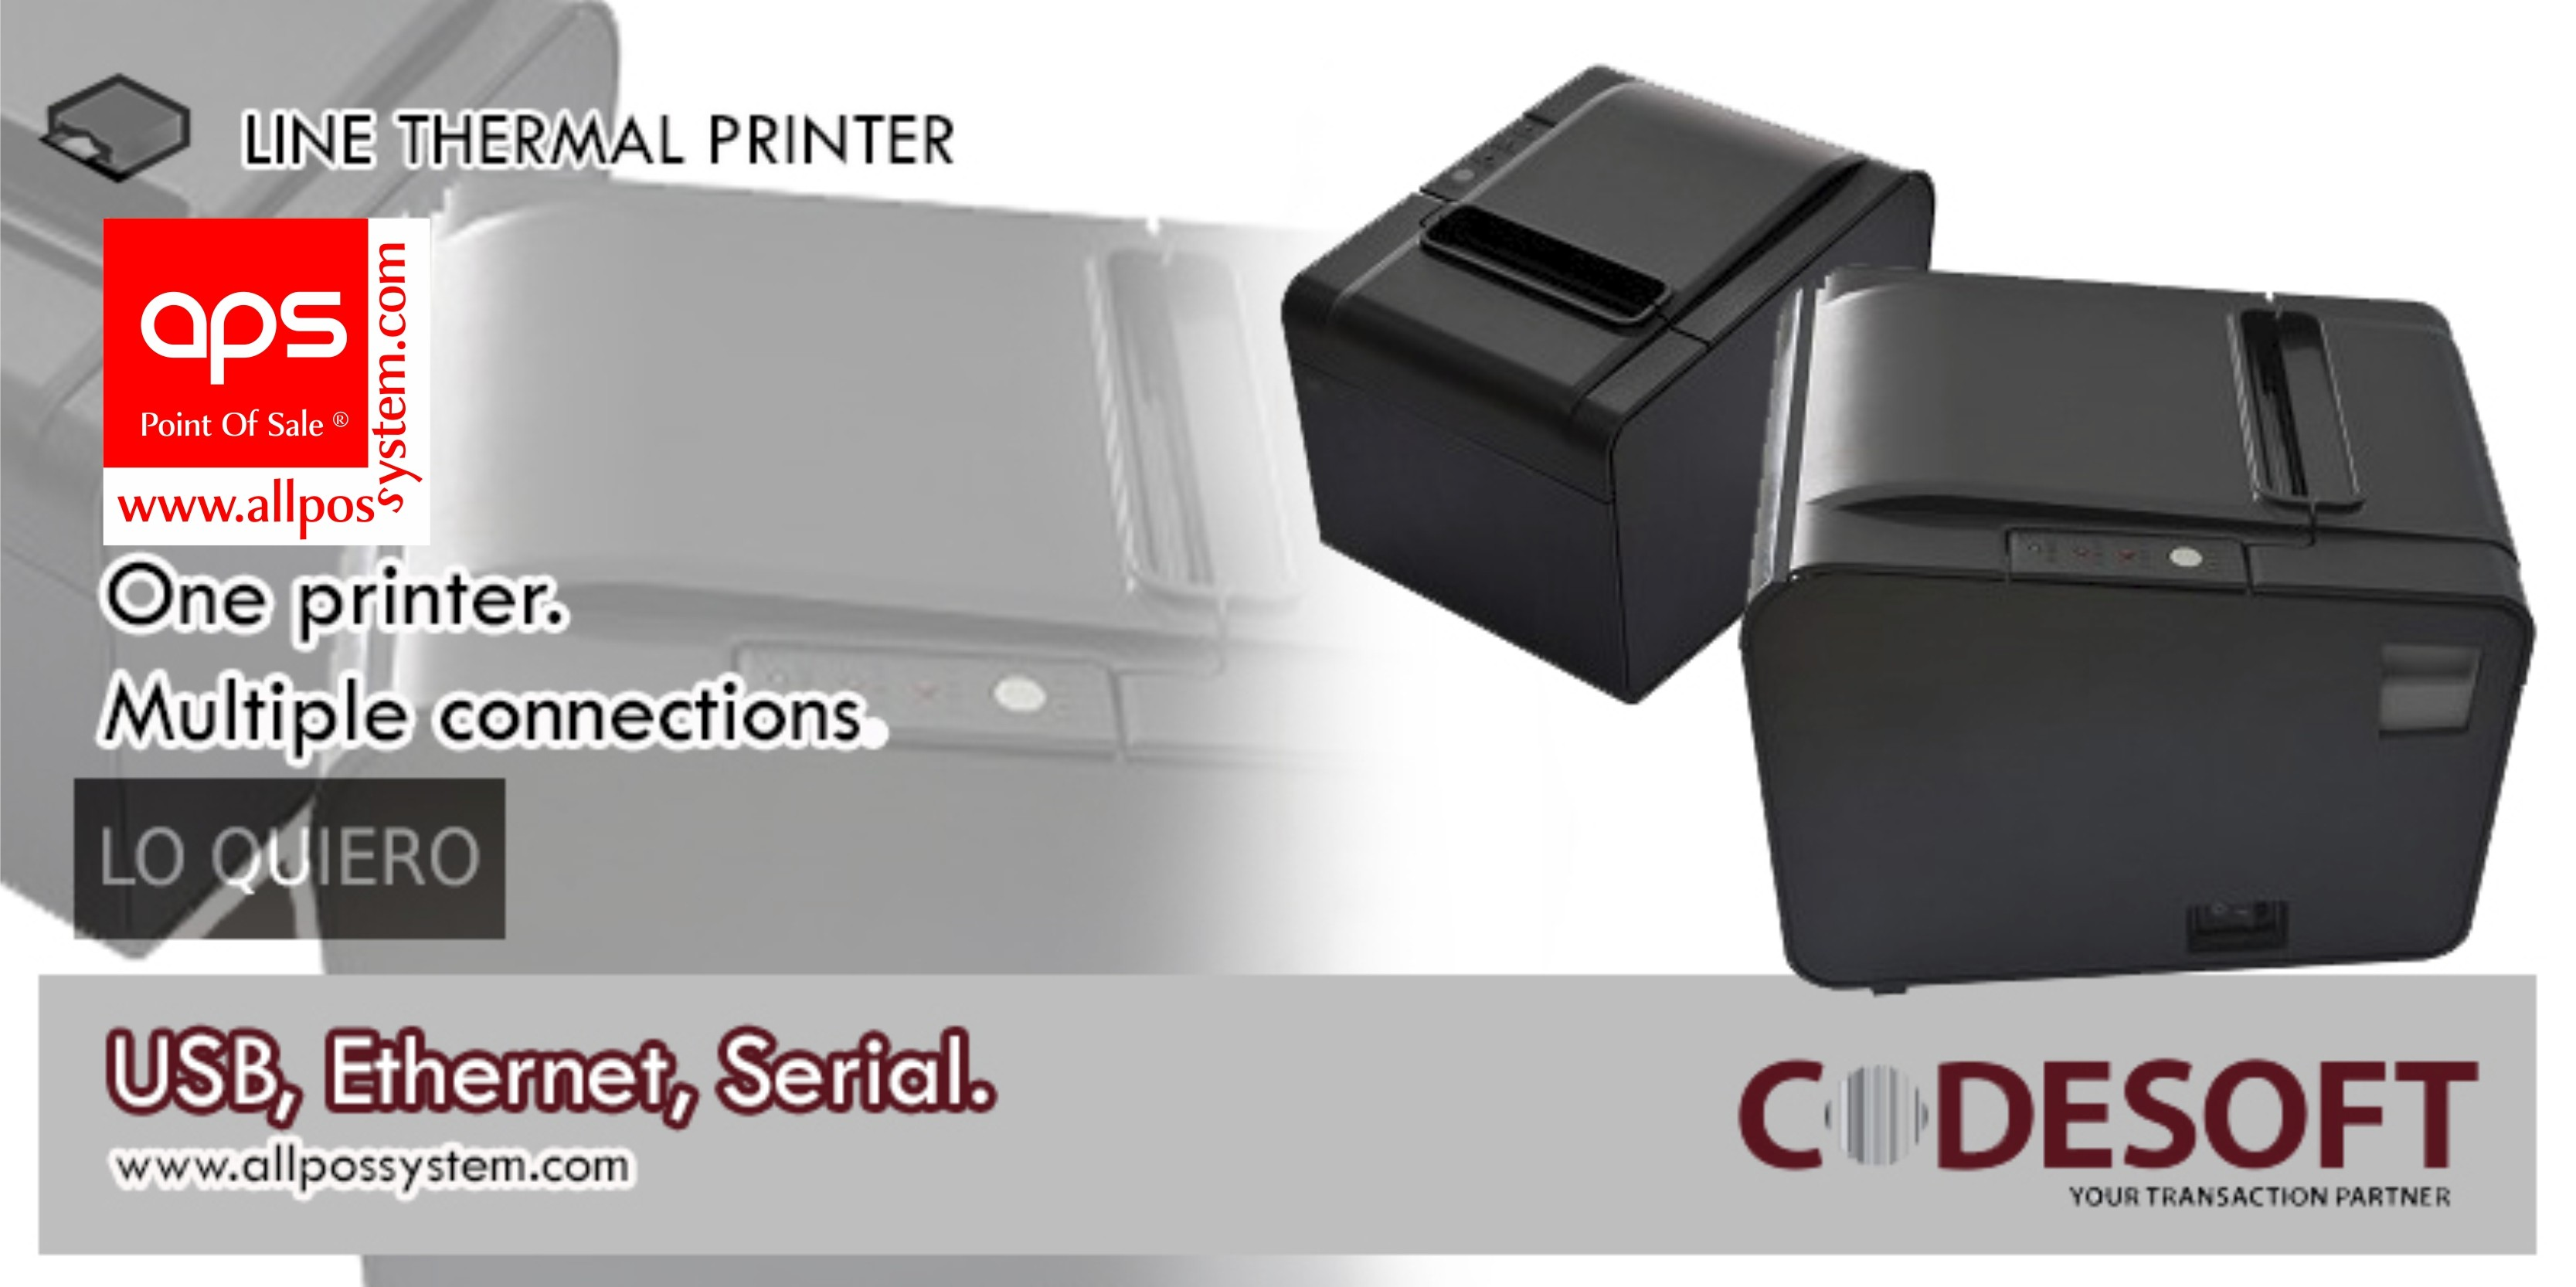 Code Soft Thermal Printer